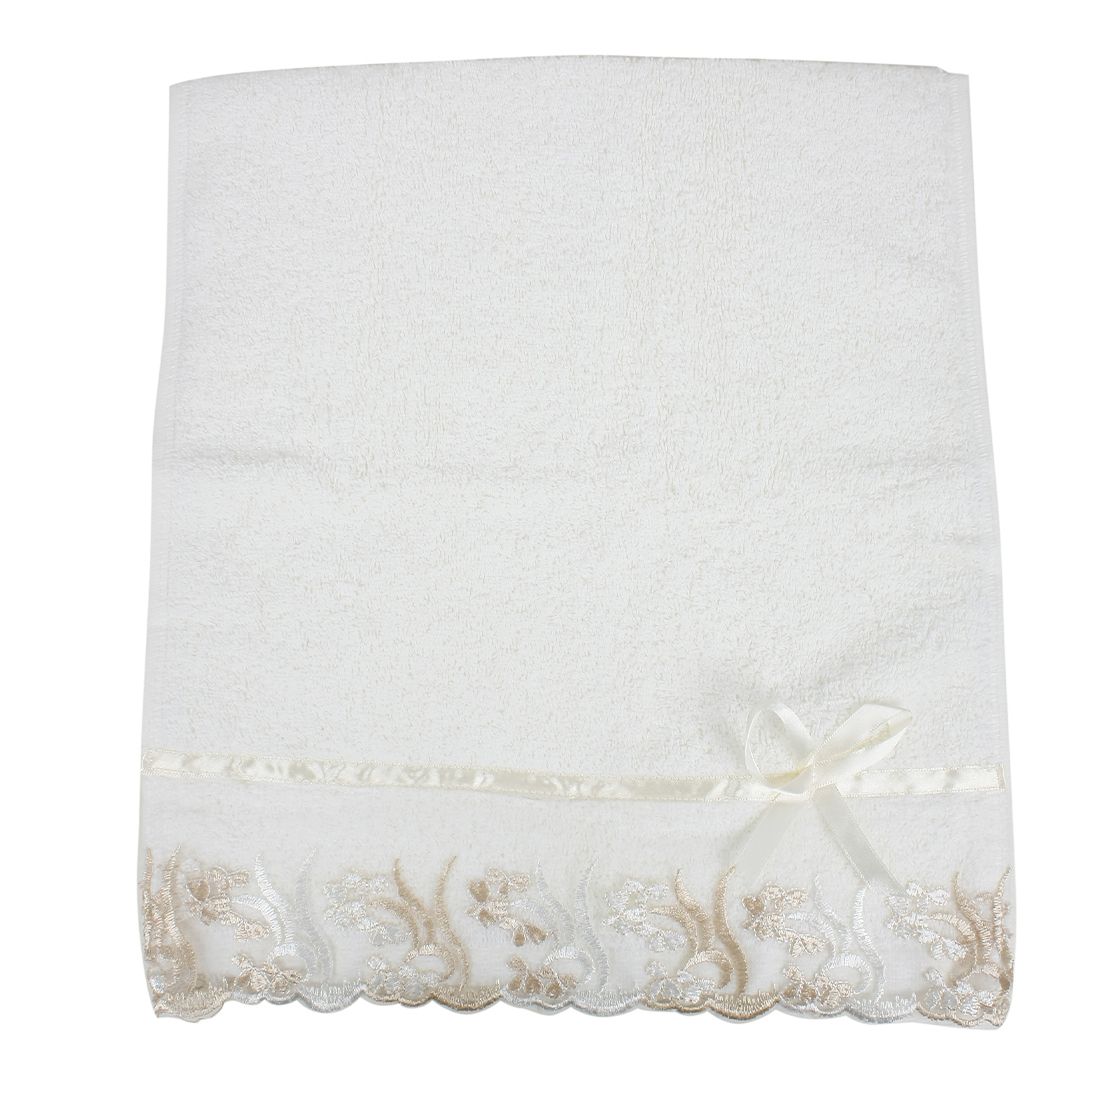 Lace Luxury Cotton Towels Face Cloth Hand Bath Towel Super Sheet